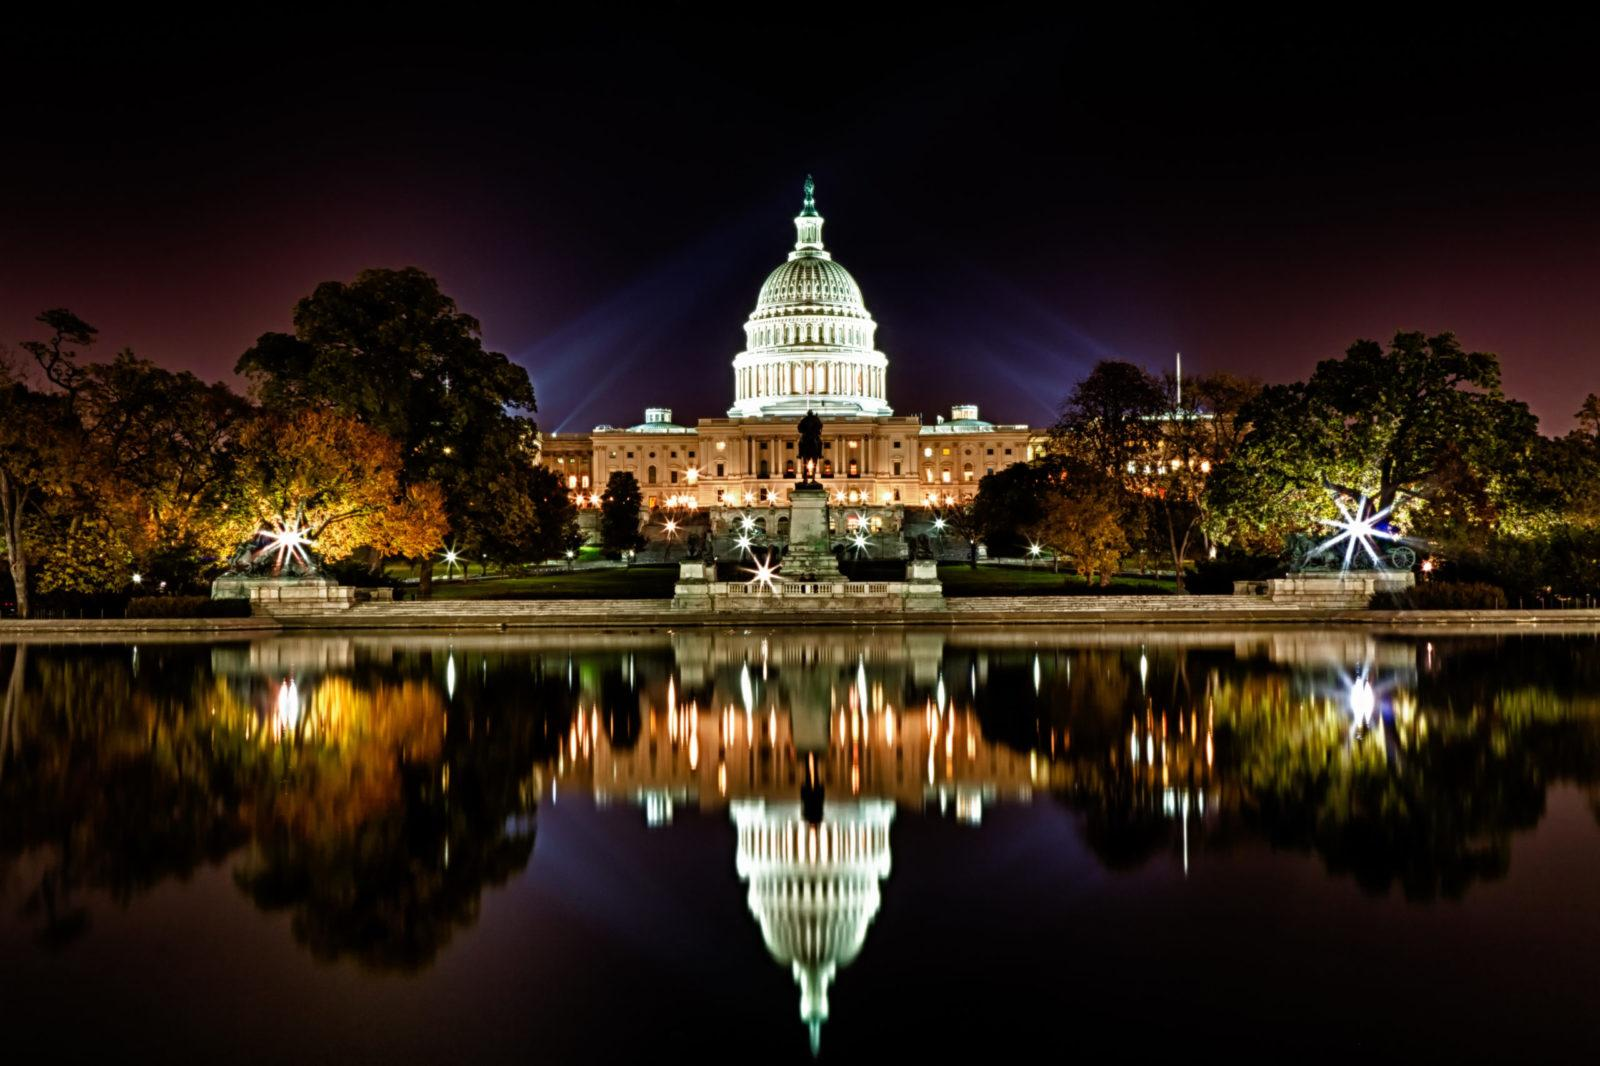 US Capitol Building and reflecting poll at night scaled - ავიაბილეთები ვაშინგტონი